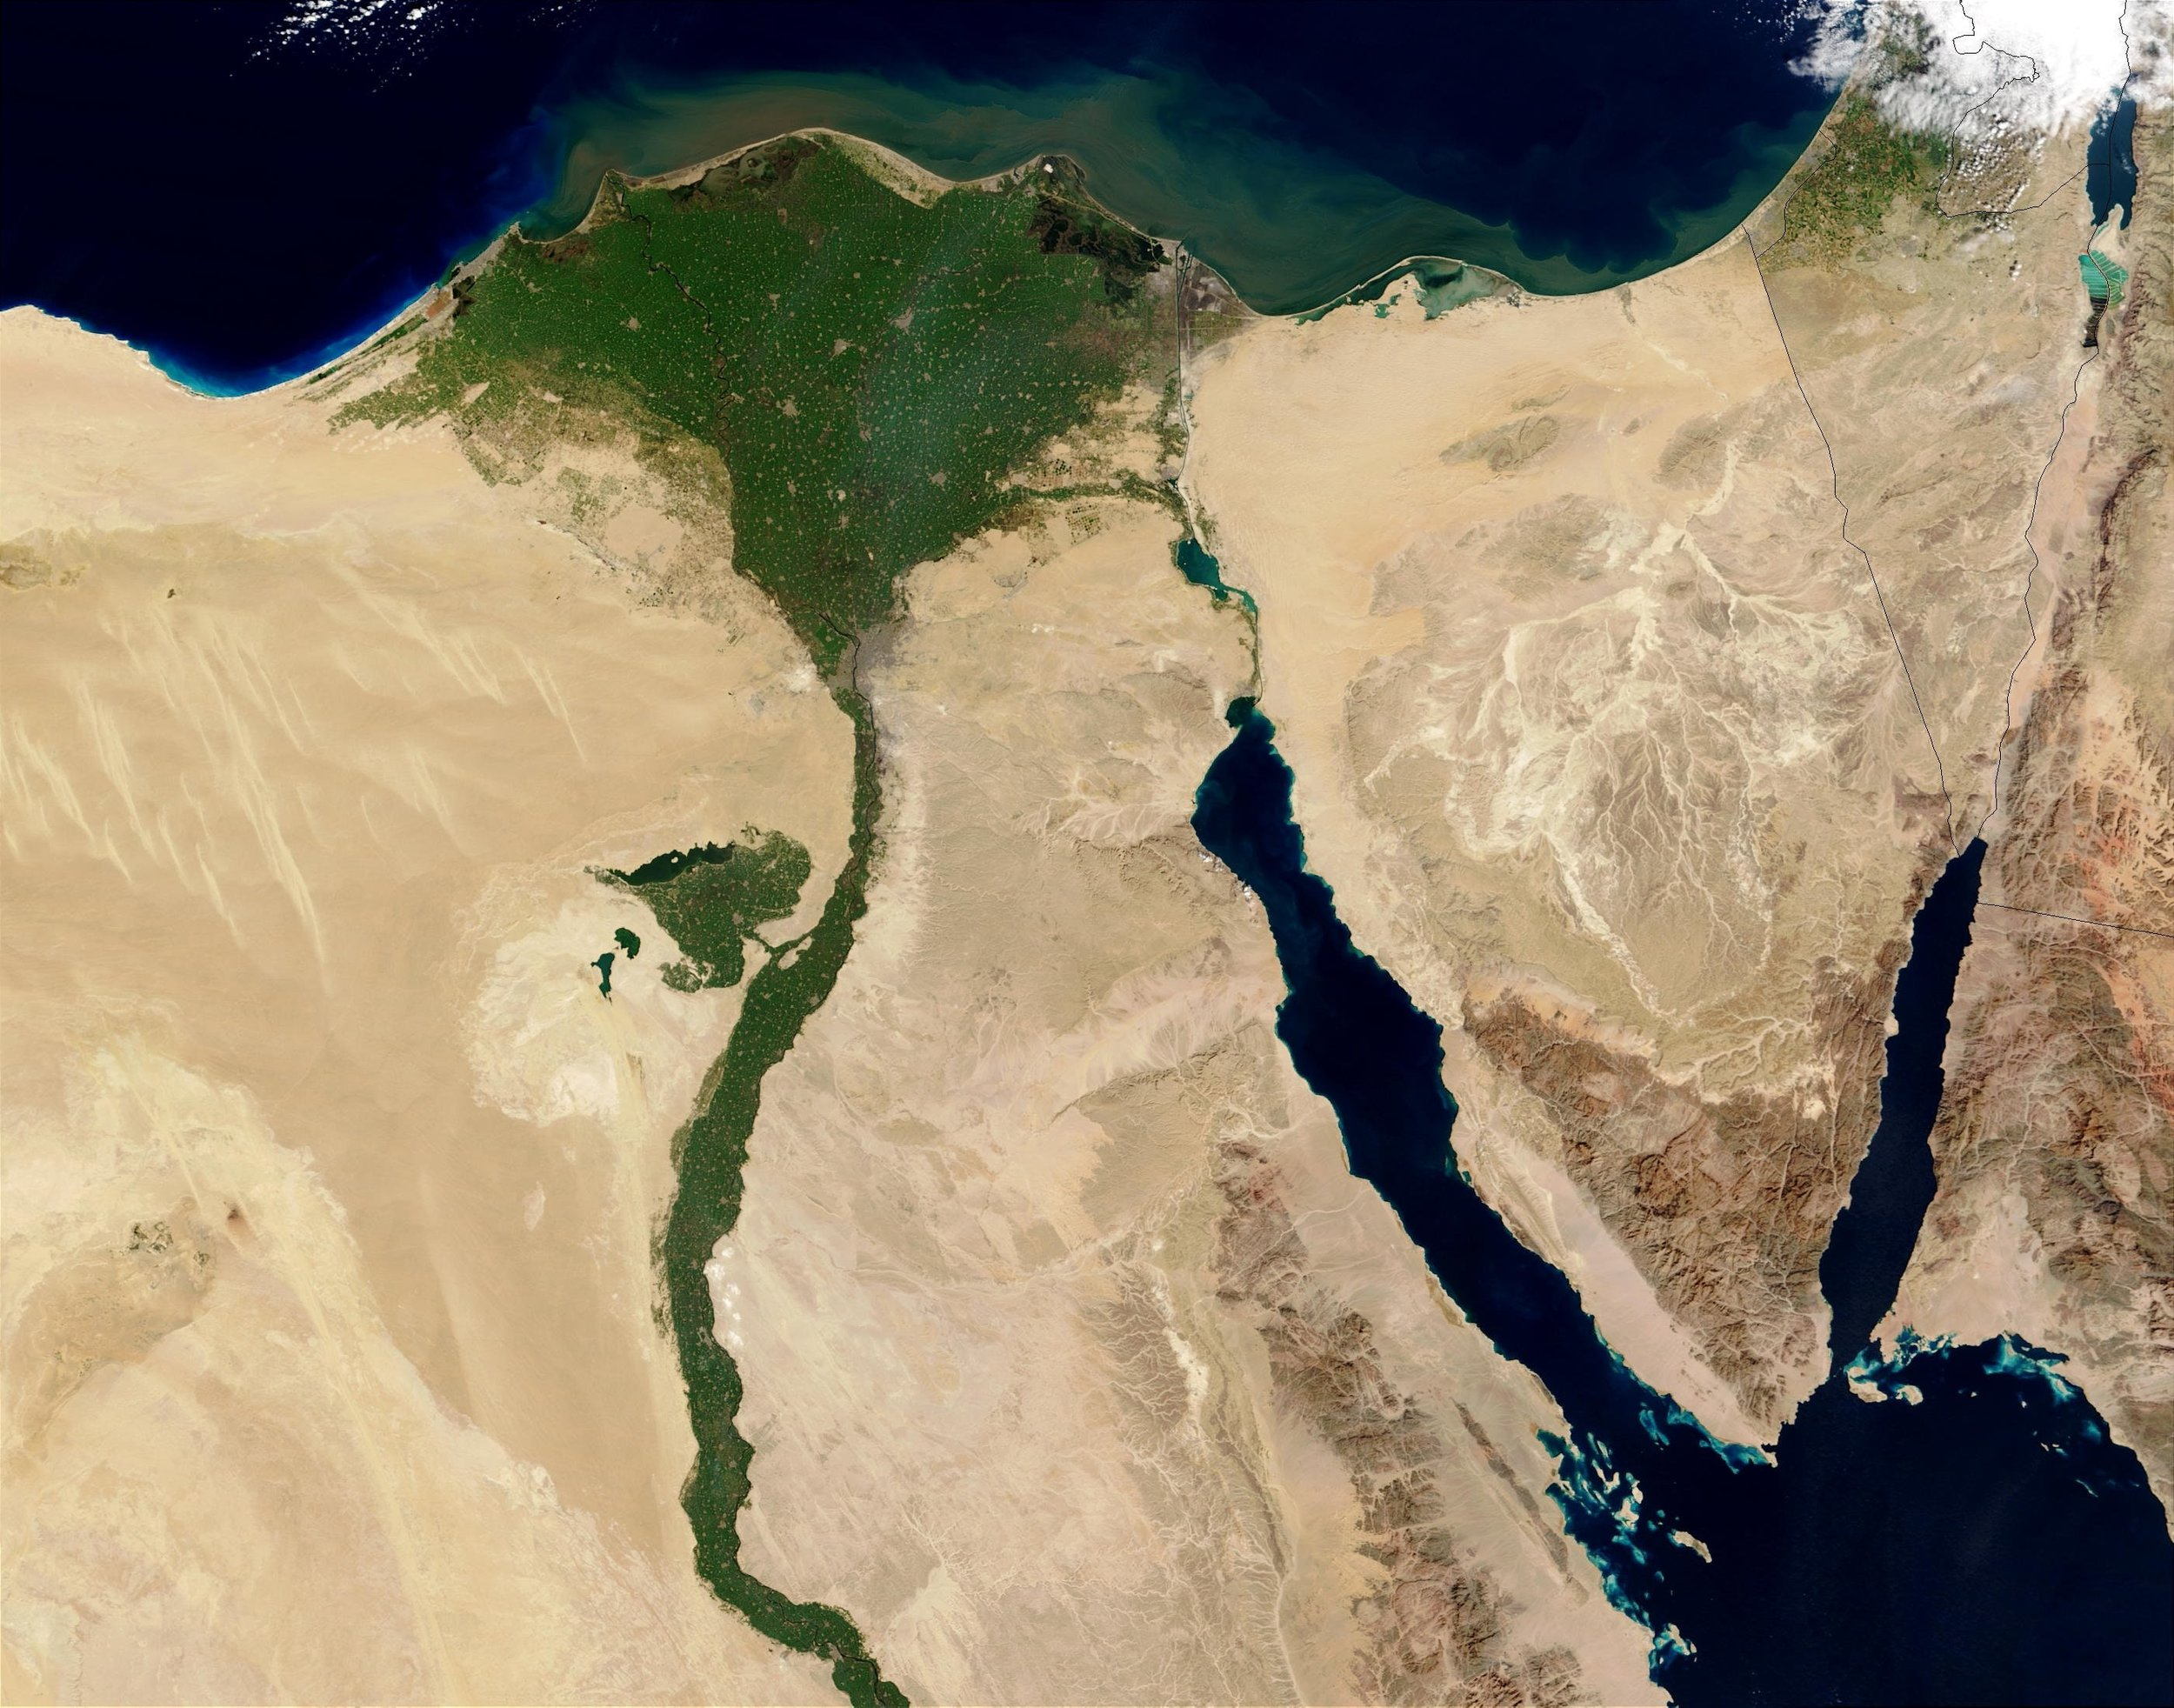 aerial-view-egypt-land-87075.jpg